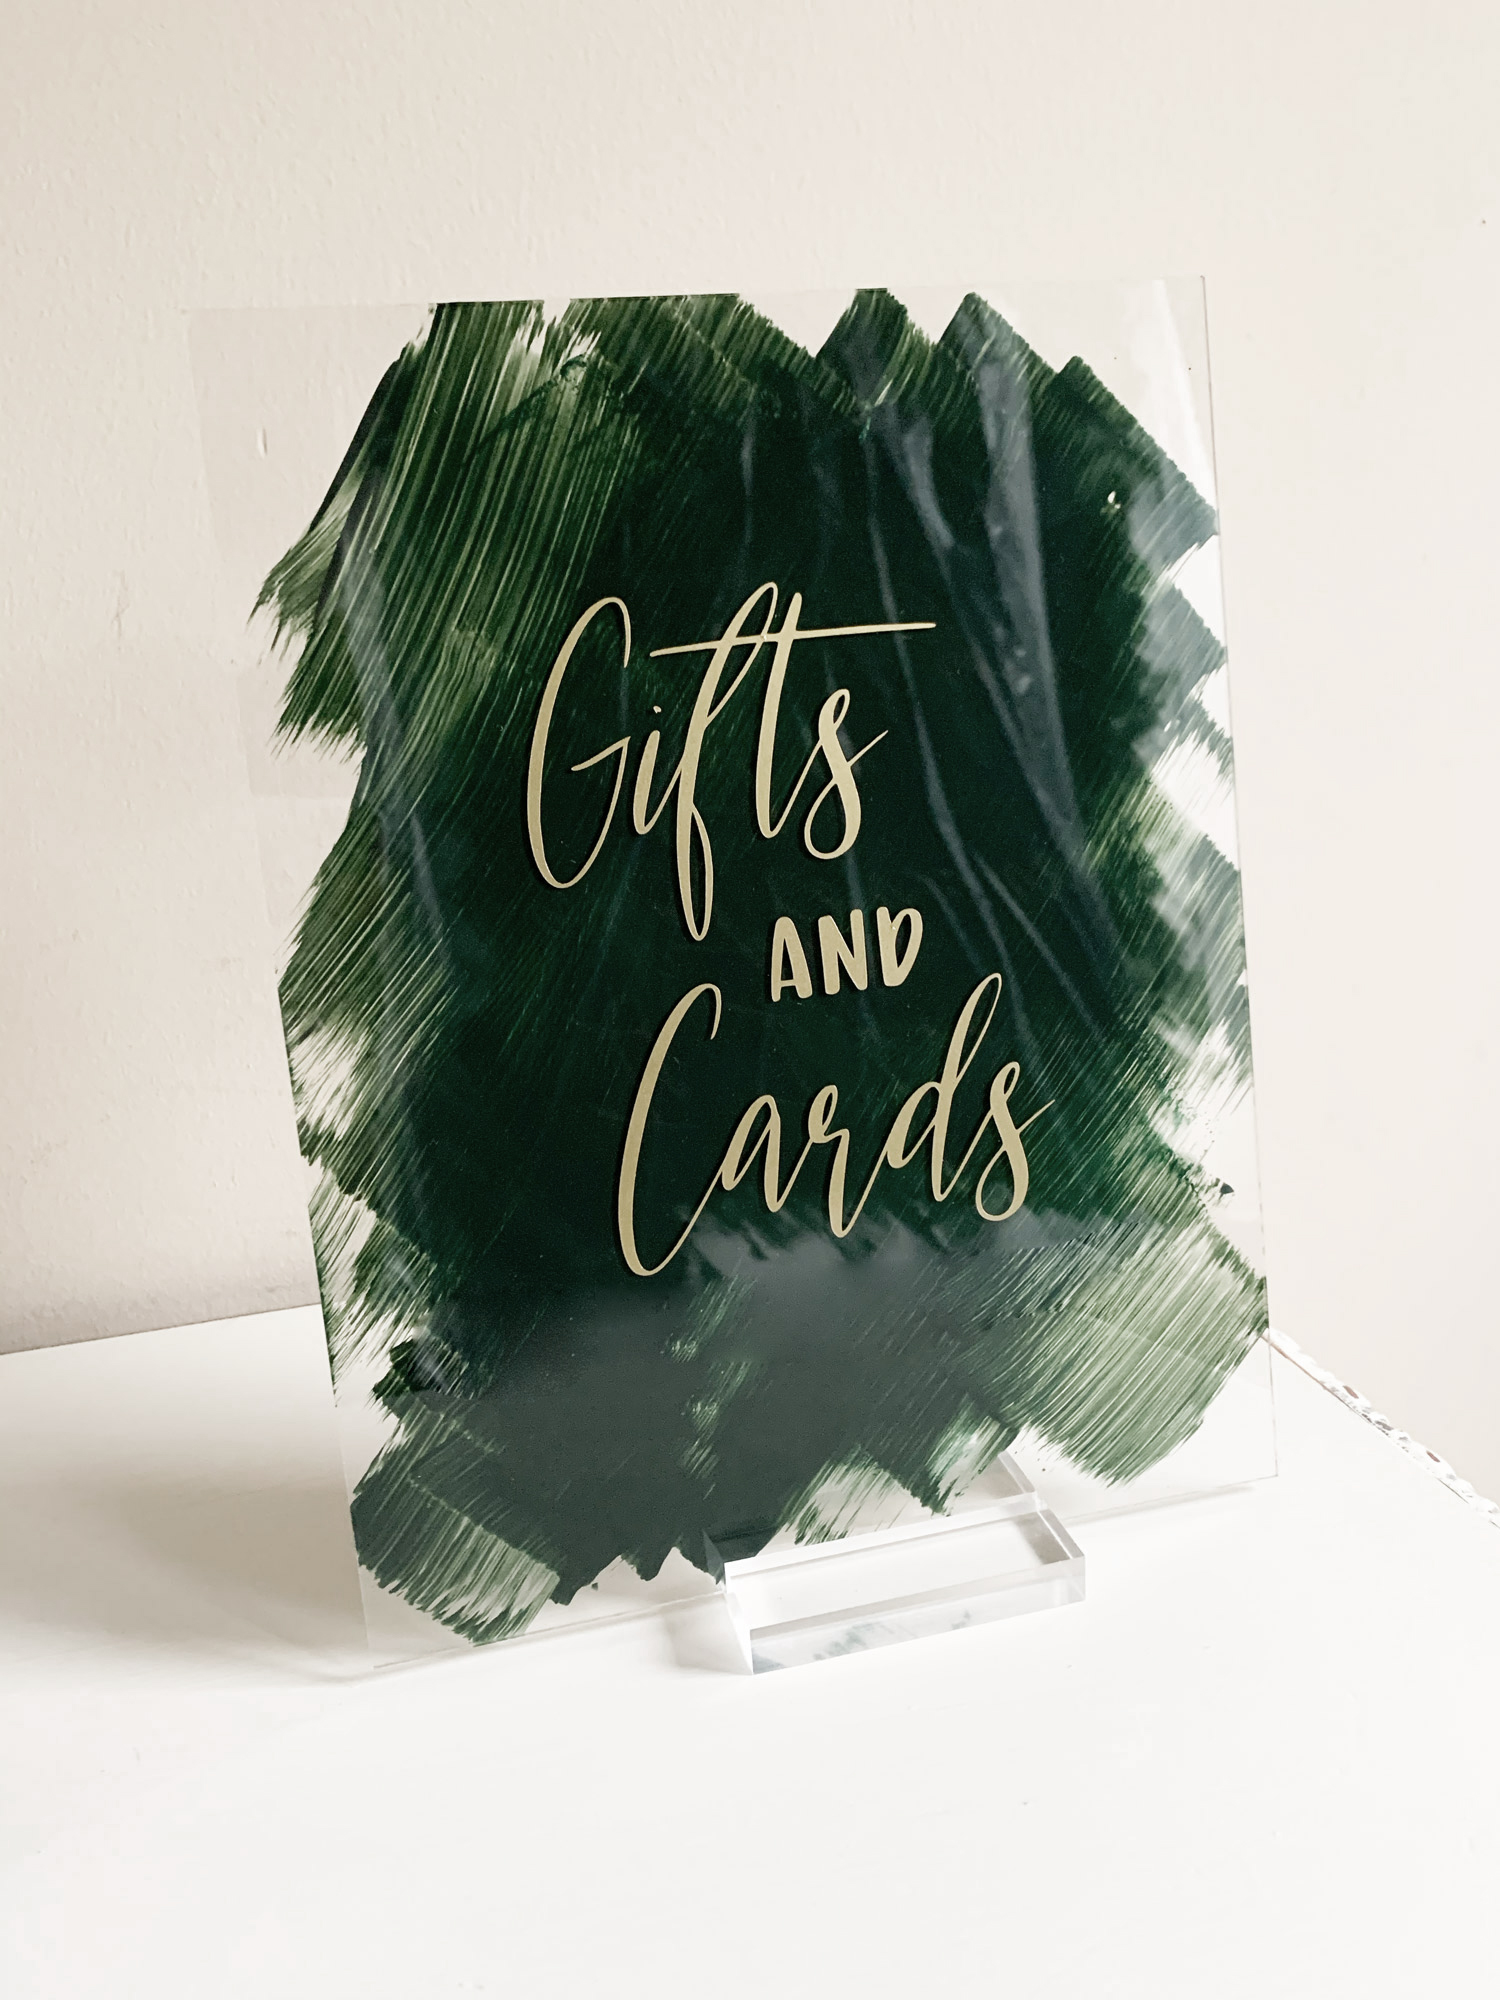 Acrylic Gifts & Cards Sign